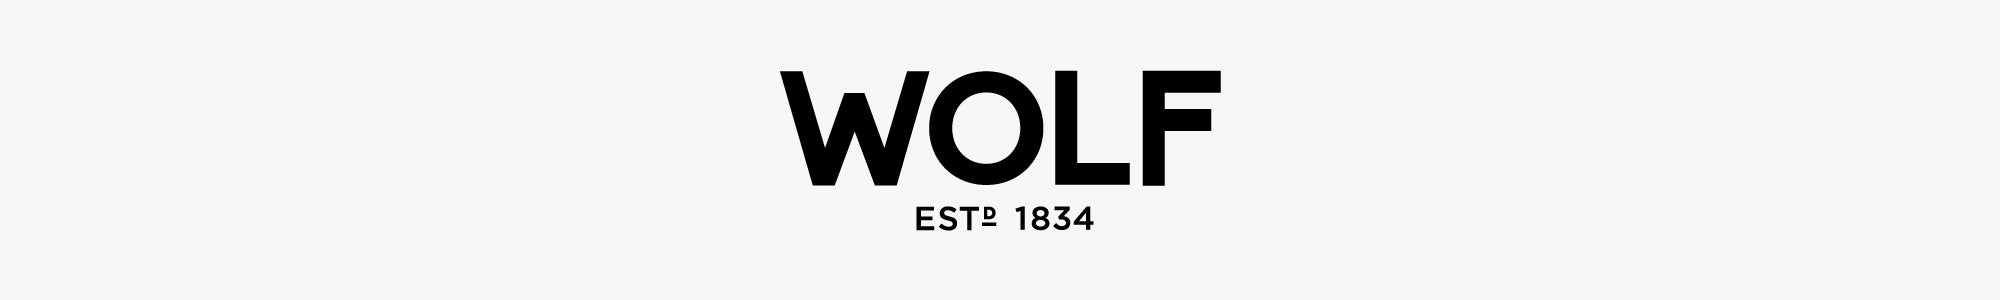 Wolf1834 Products